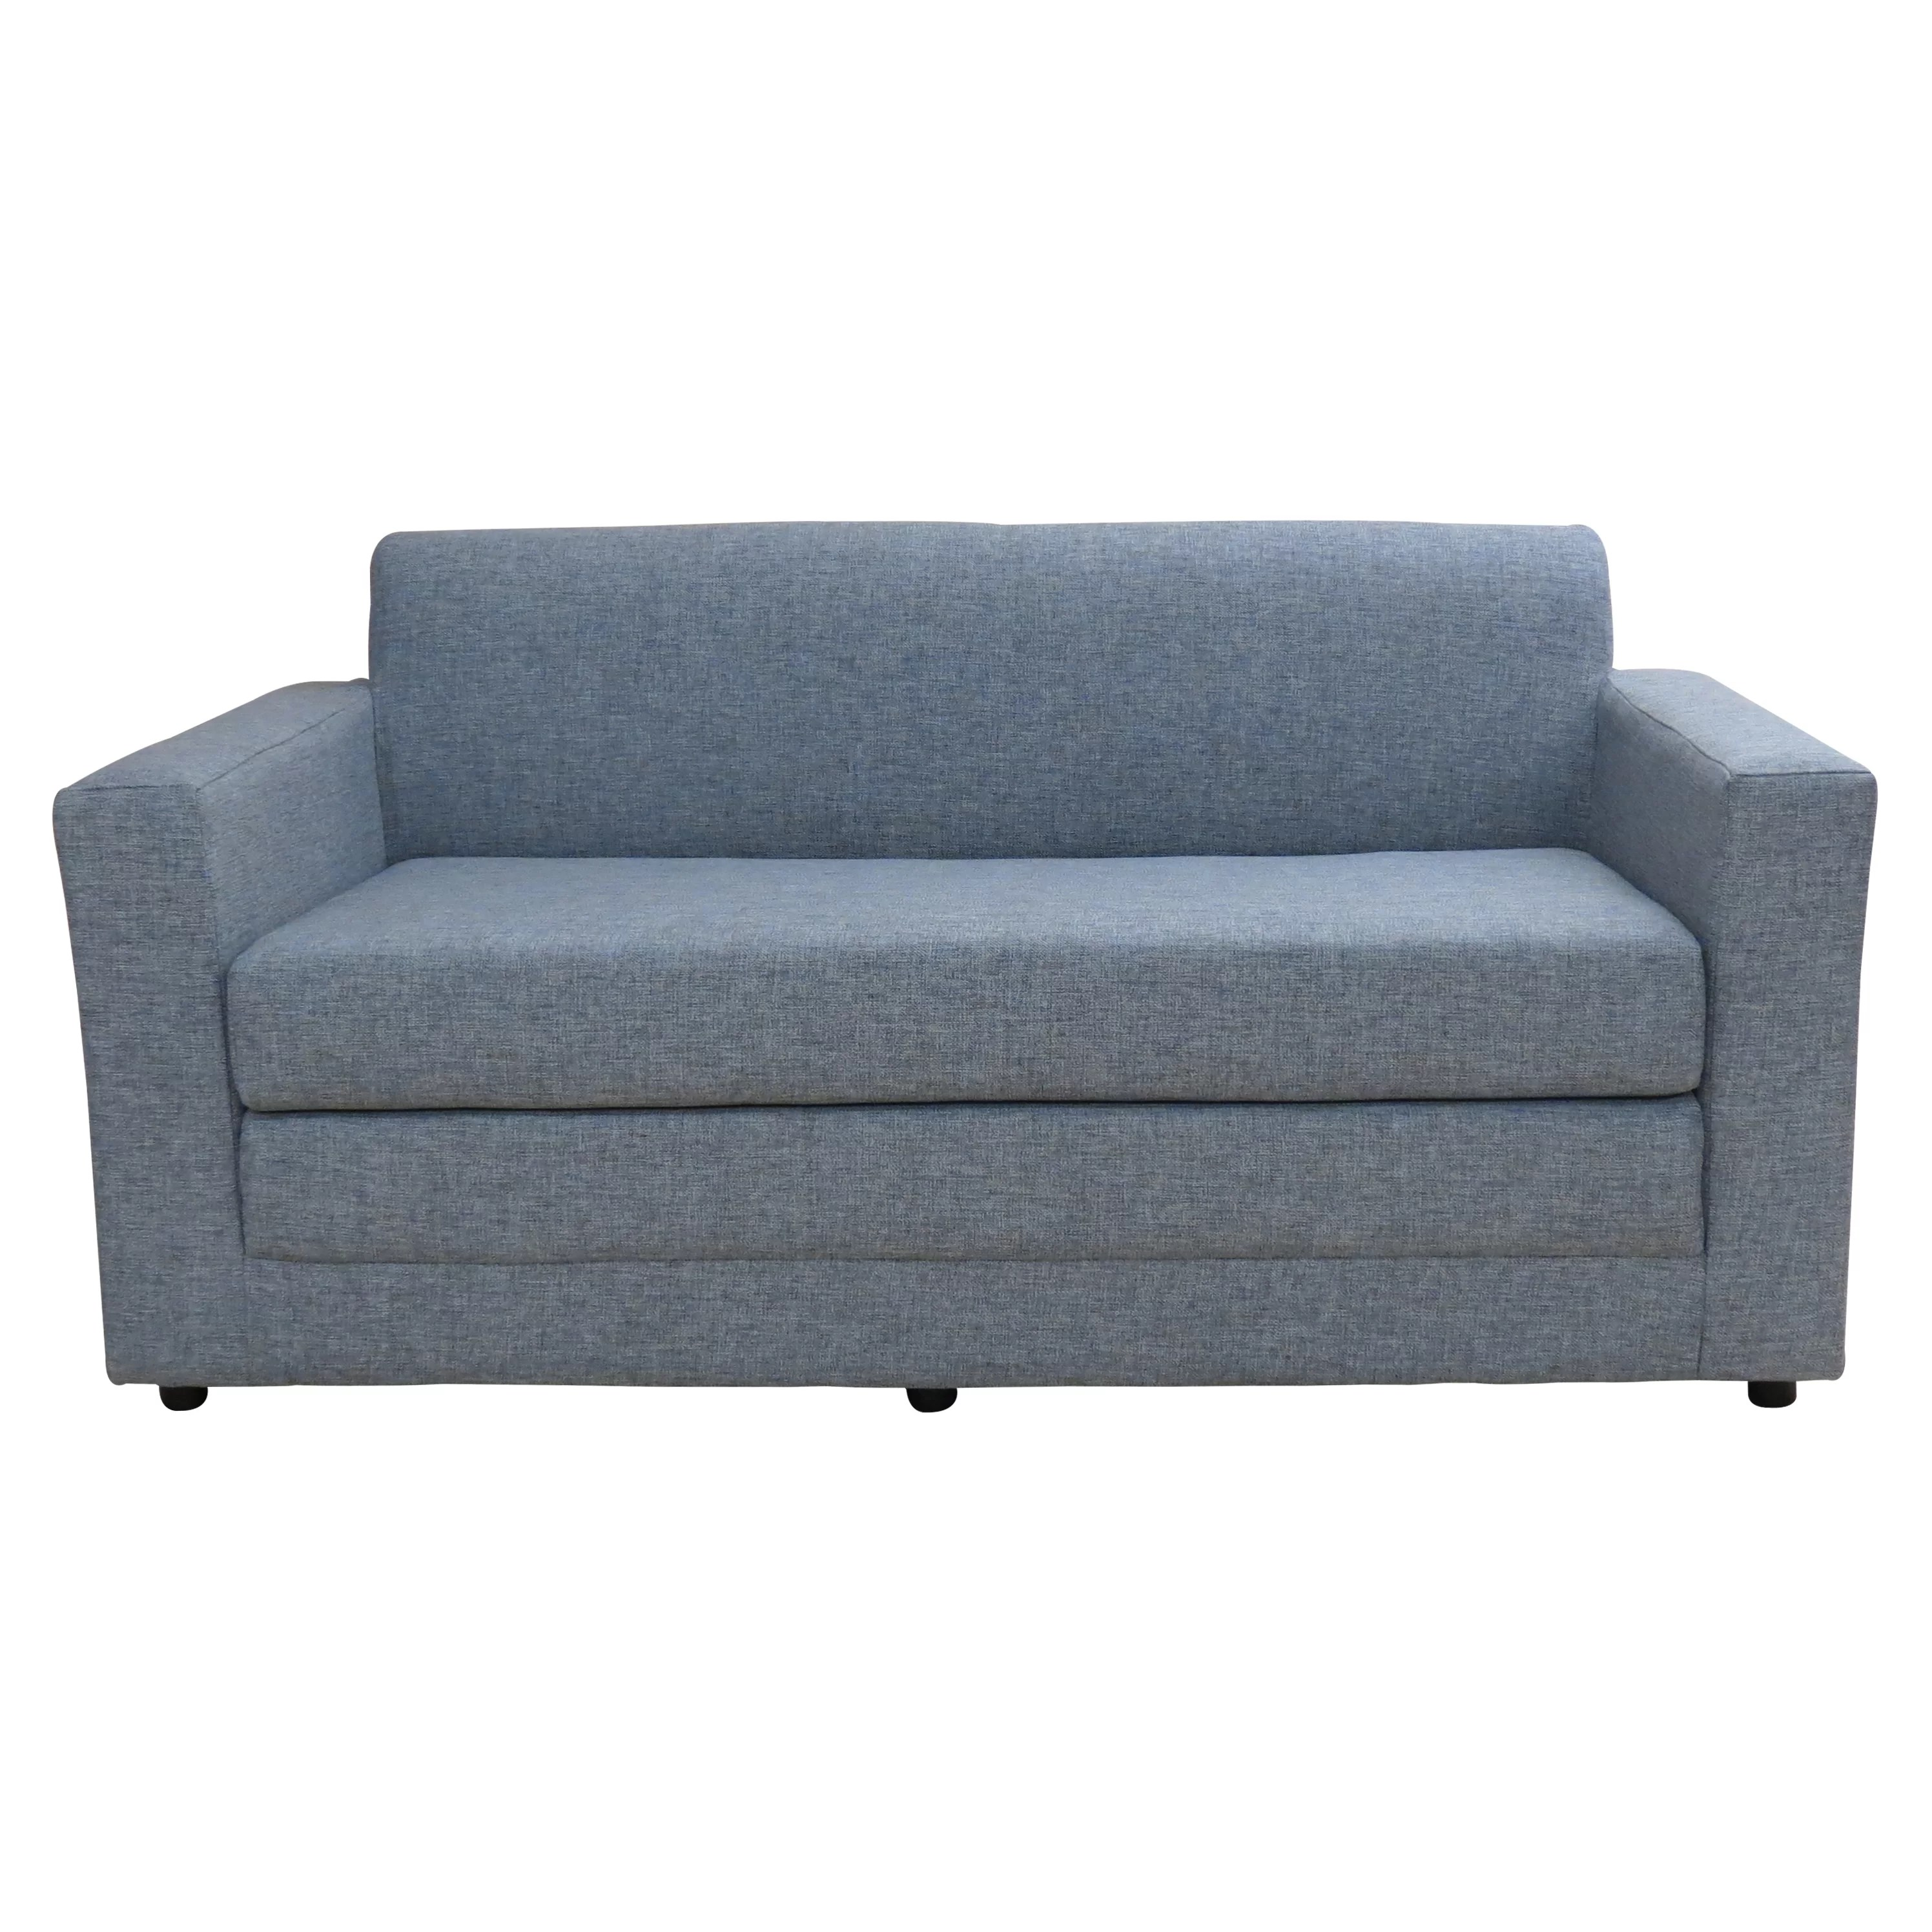 ■sofa bed Radiate Pull Out Queen Sofa Bed Pull Out Queen Sofa